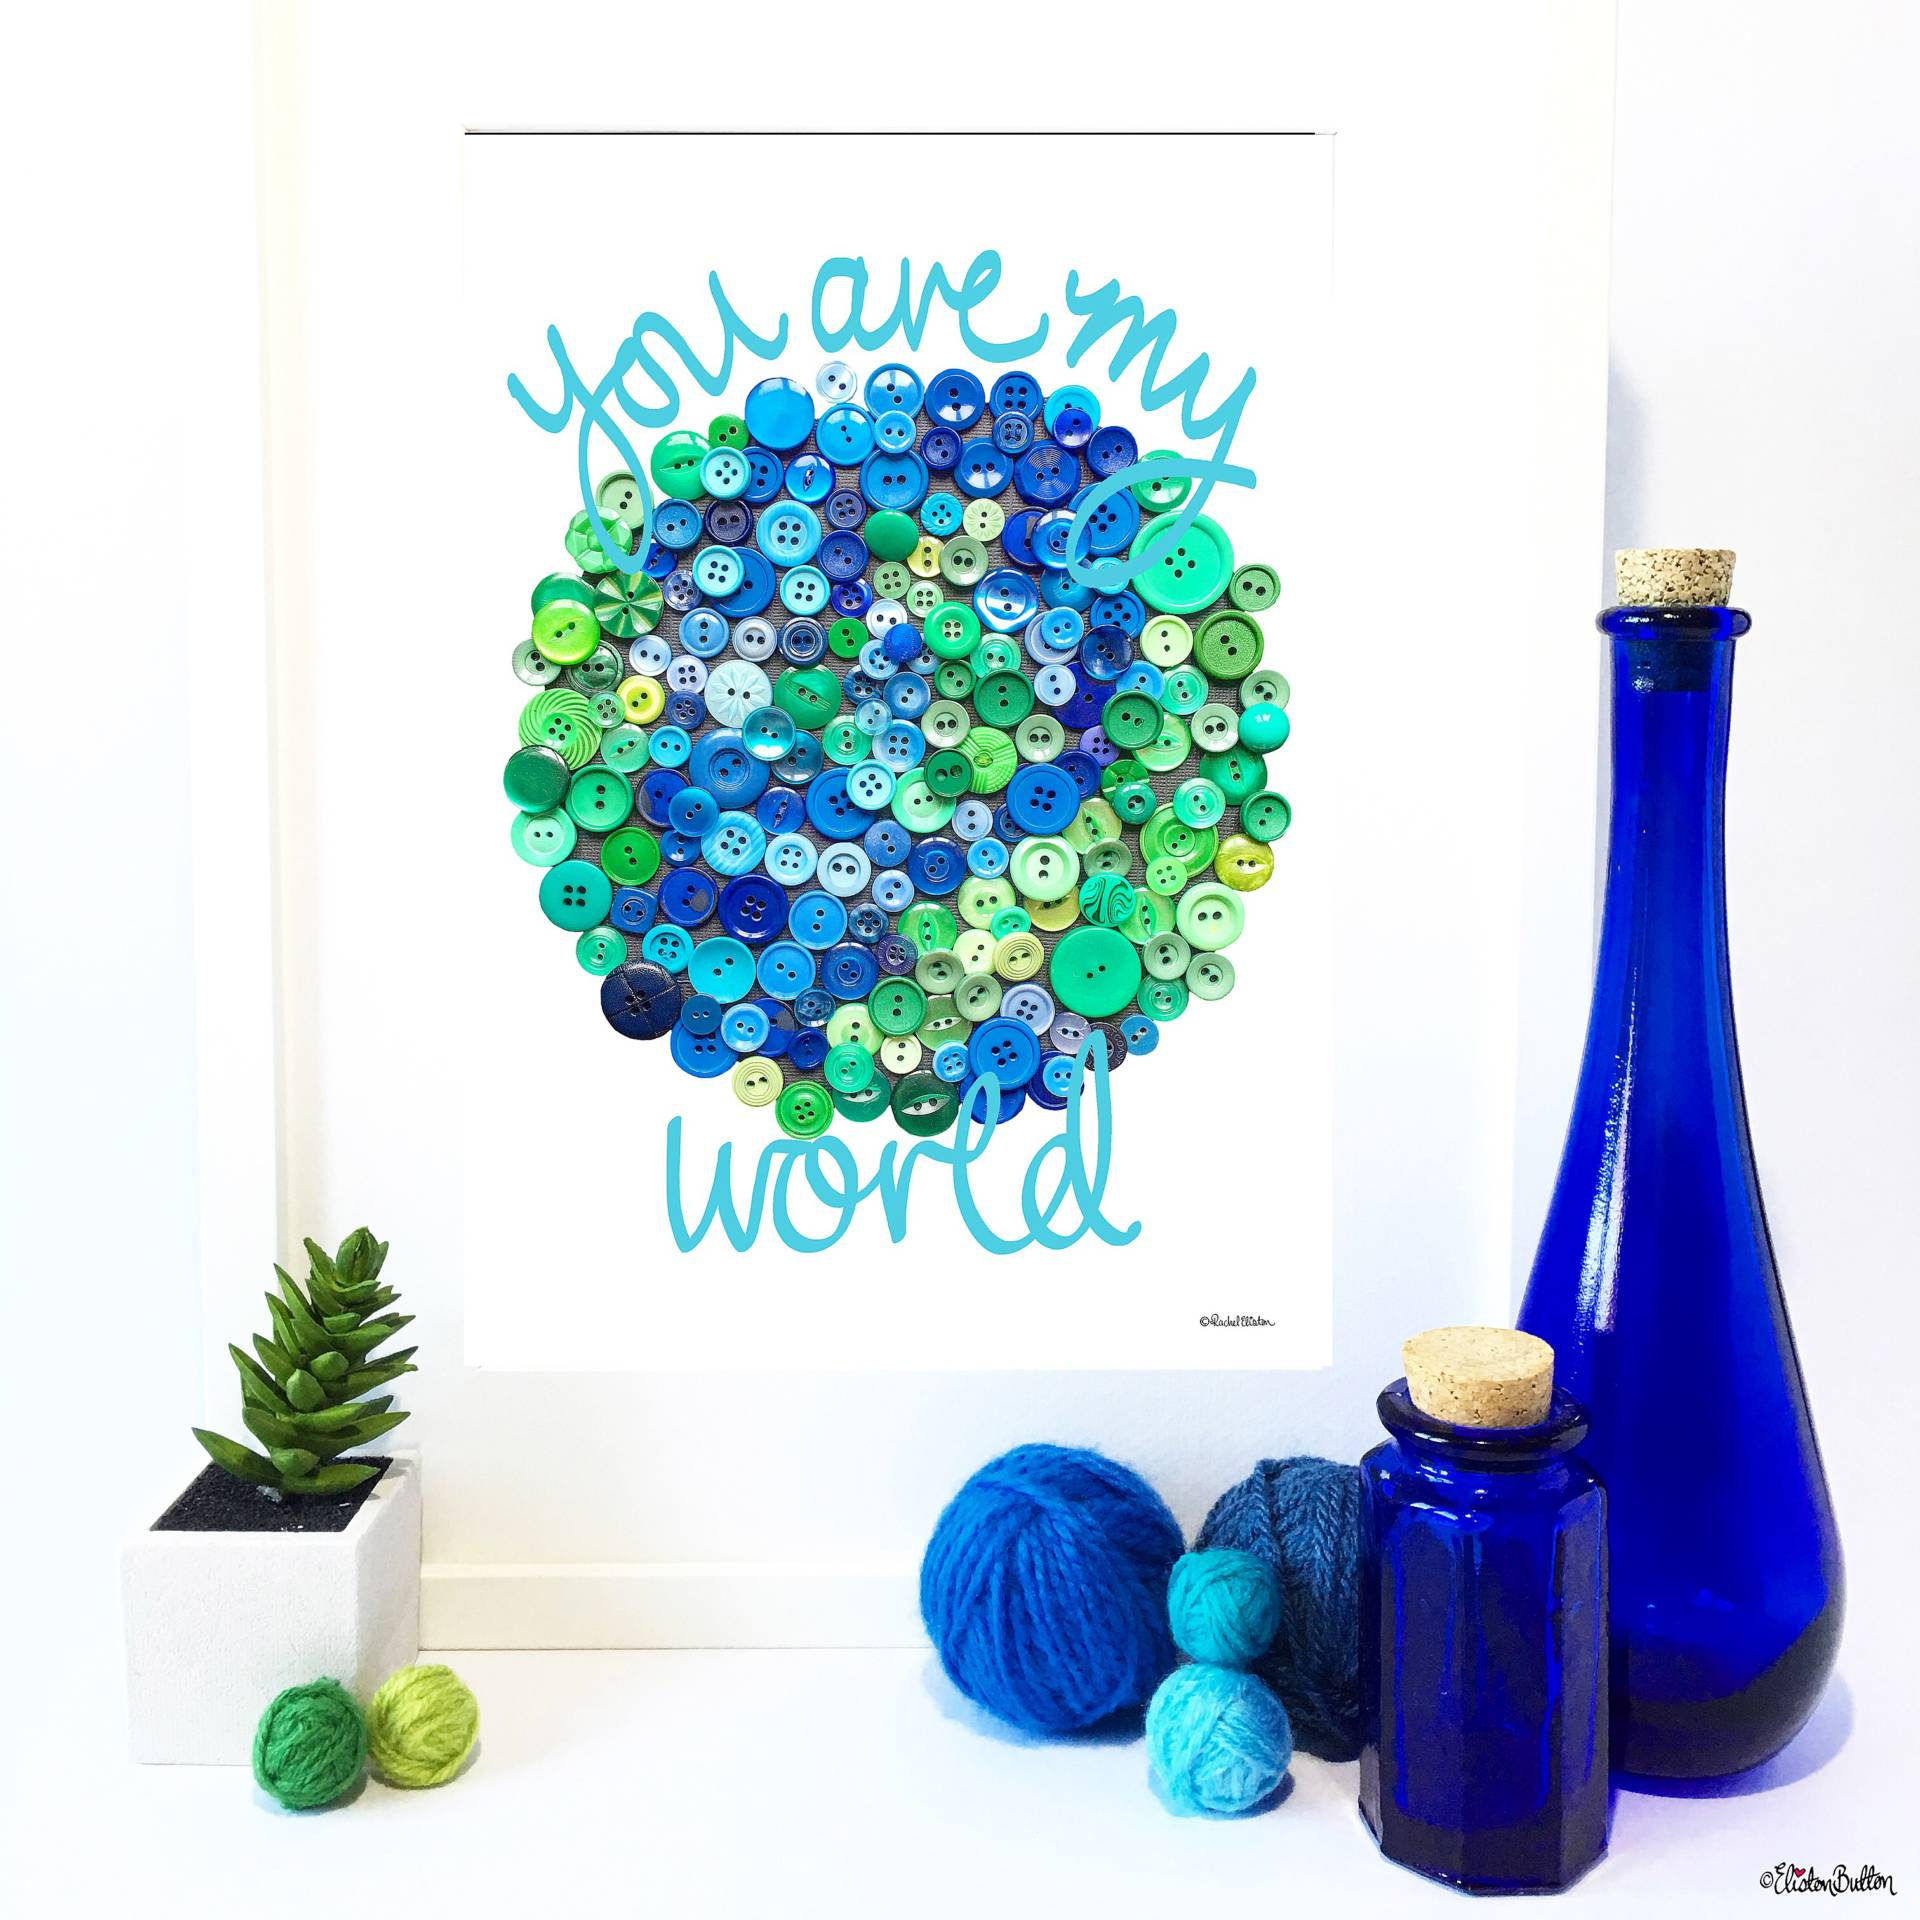 Blue Hand Lettered You Are My World Button Art Earth Print by Eliston Button - Eliston Button is Four! at www.elistonbutton.com - Eliston Button - That Crafty Kid – Art, Design, Craft & Adventure.